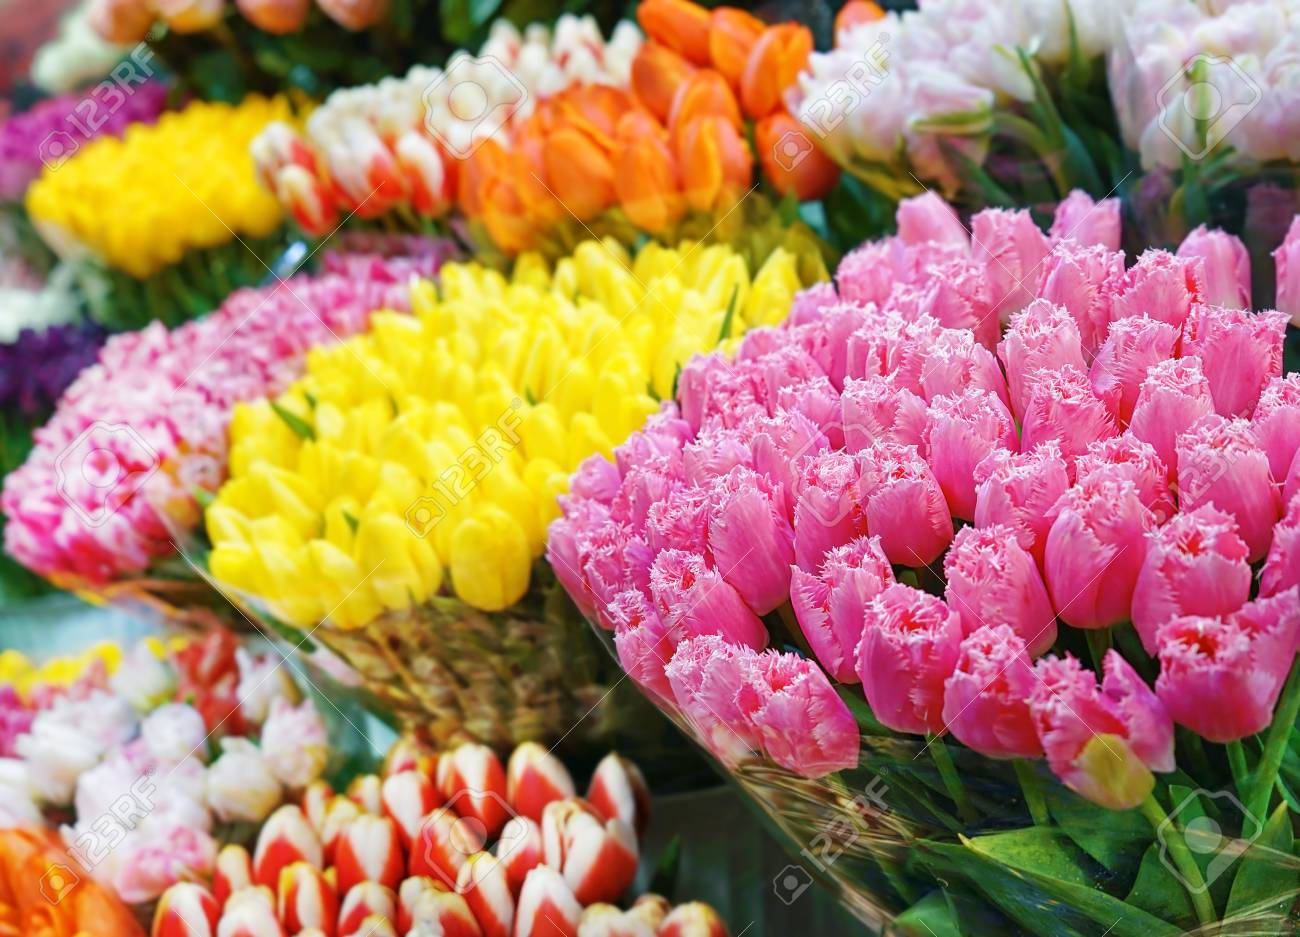 Assortment of beautiful flowers at floral shop stock photo picture assortment of beautiful flowers at floral shop stock photo 97641545 izmirmasajfo